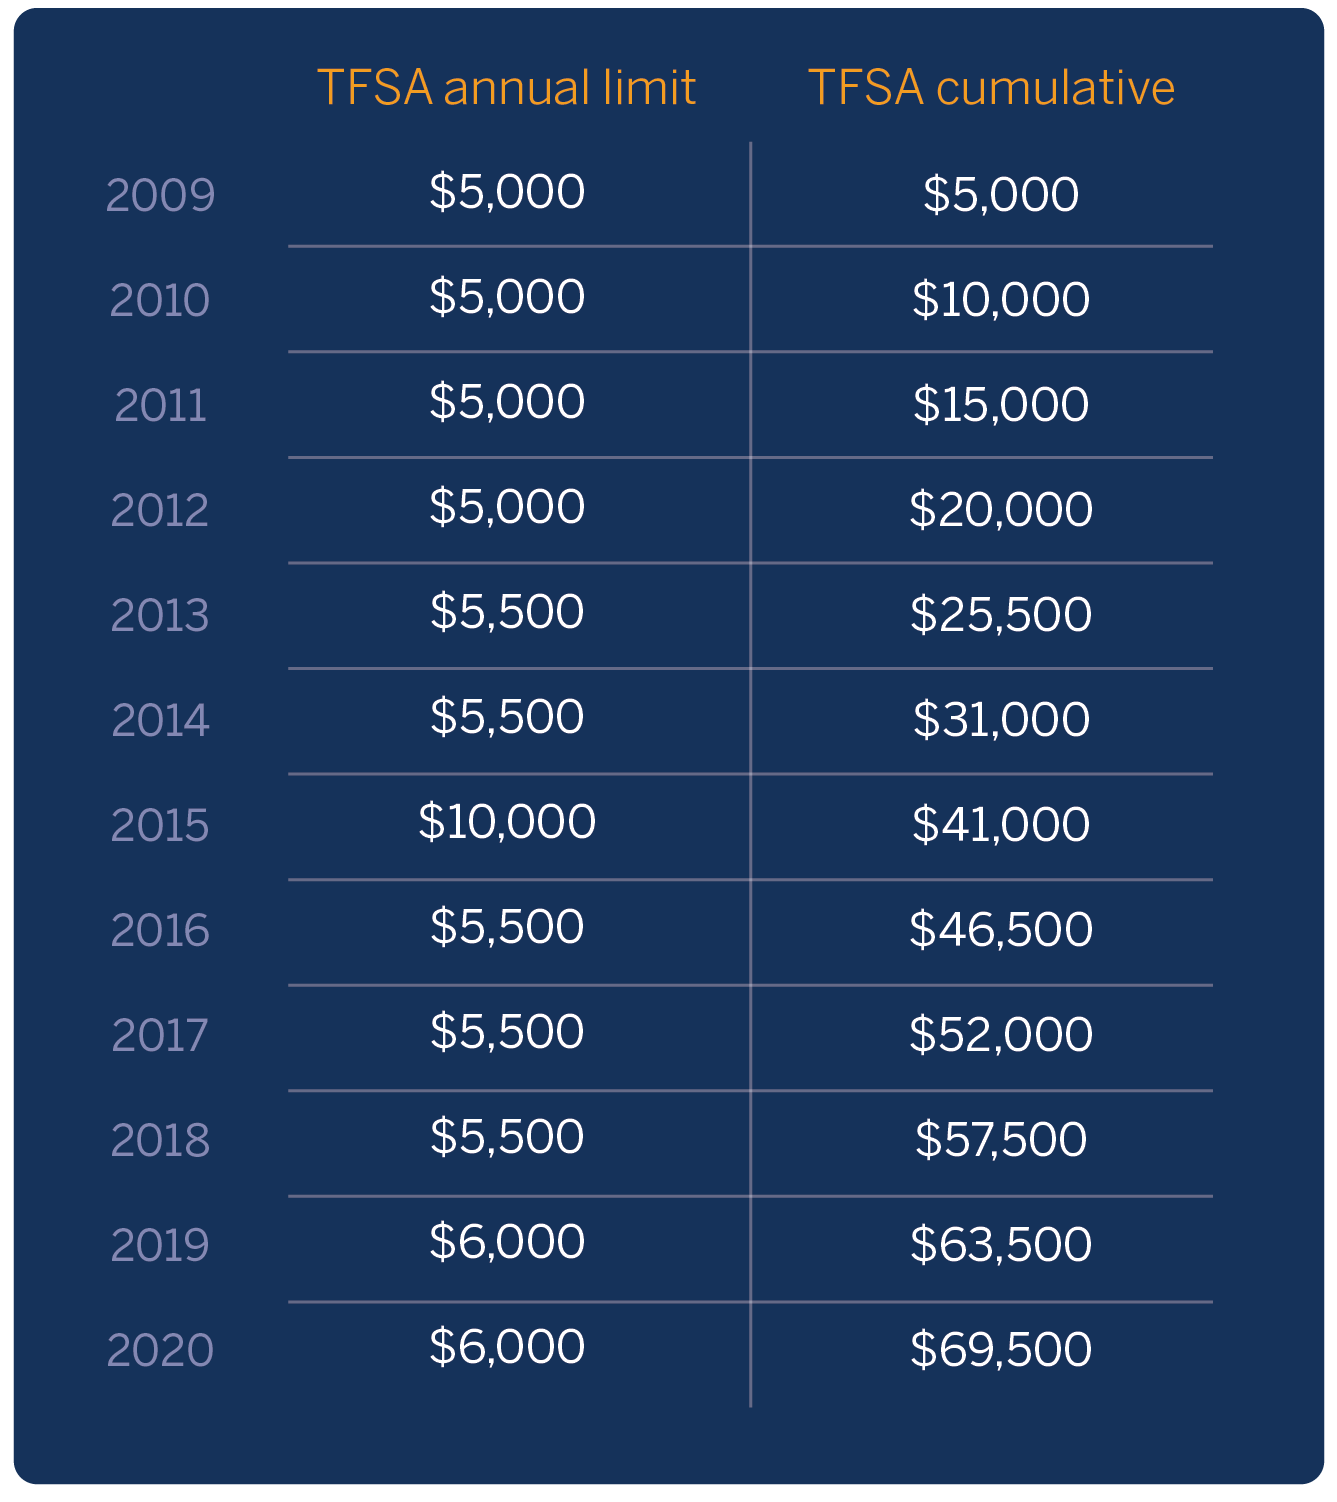 Table shows the TFSA annual limit and TFSA cumulative amounts from 2009 to 2020